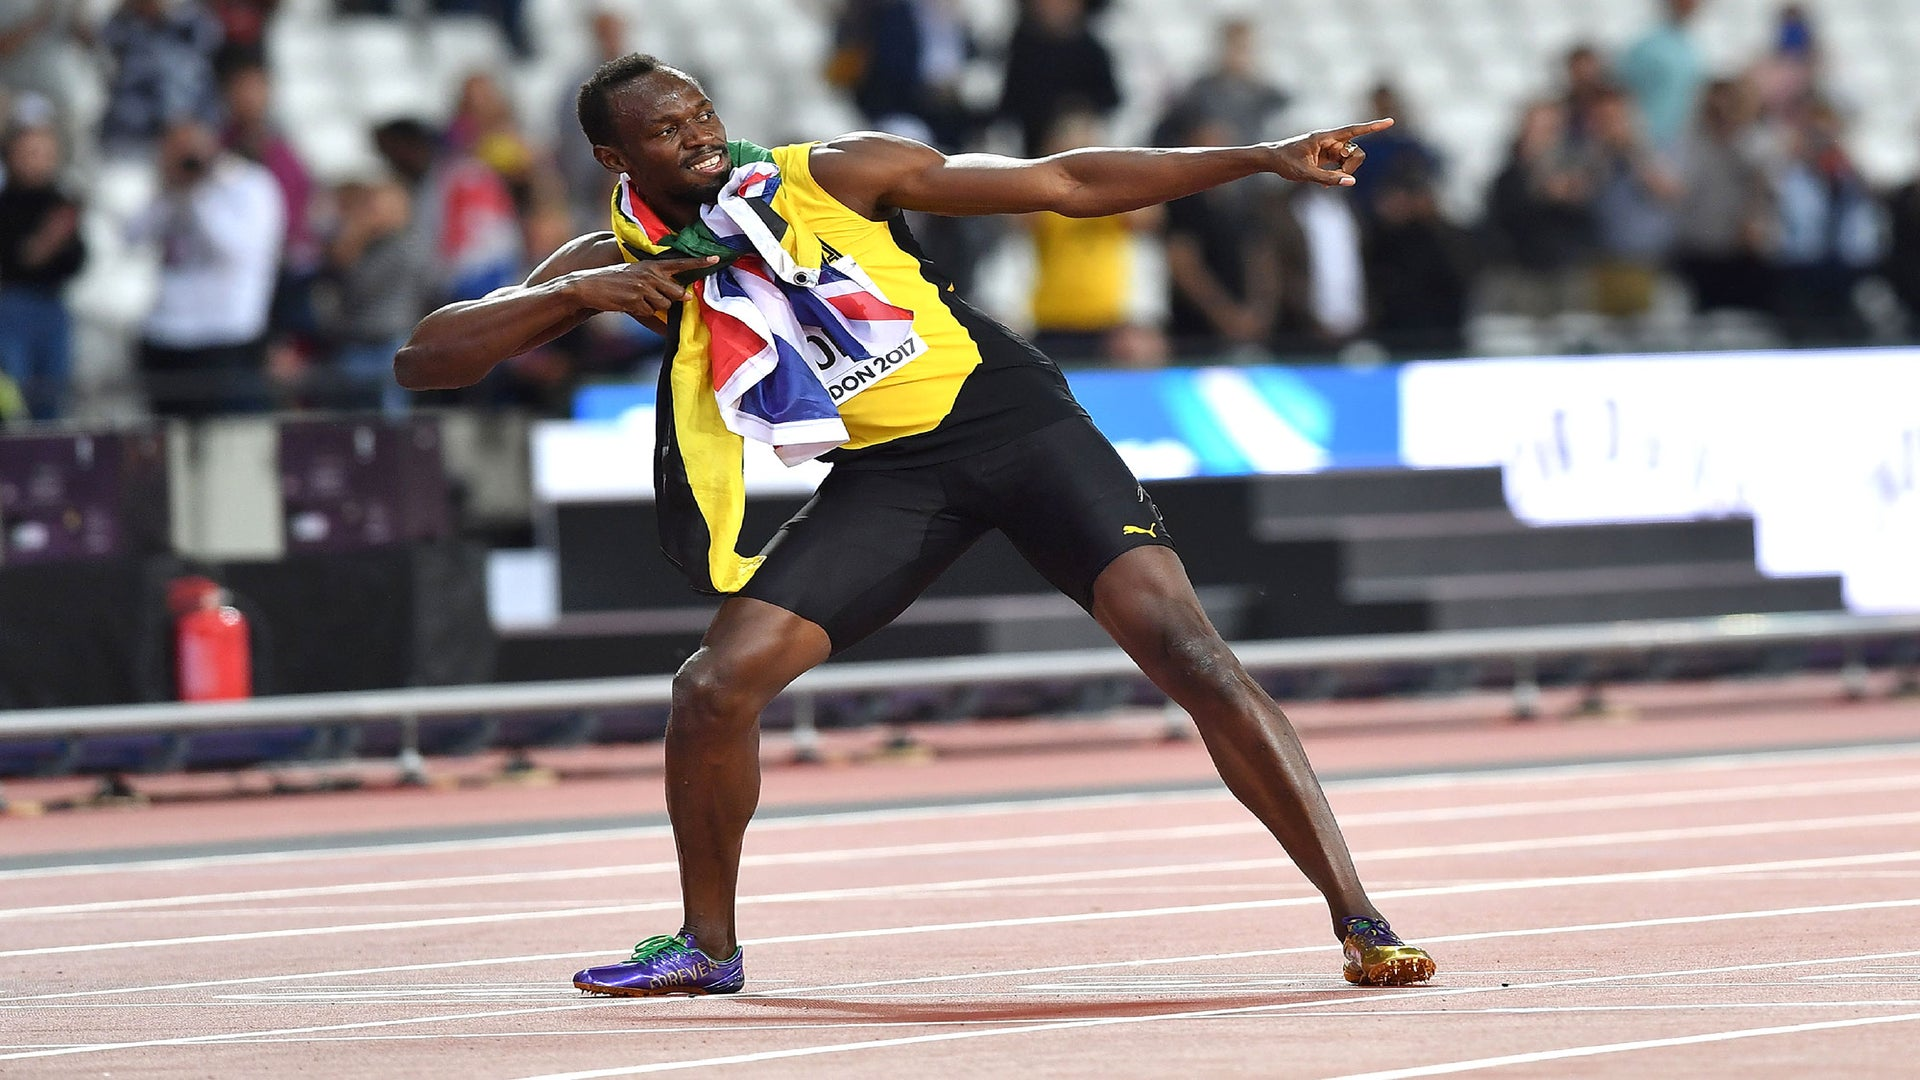 Usain Bolt Finishes Final Solo Race In Third Behind Two U.S. Sprinters